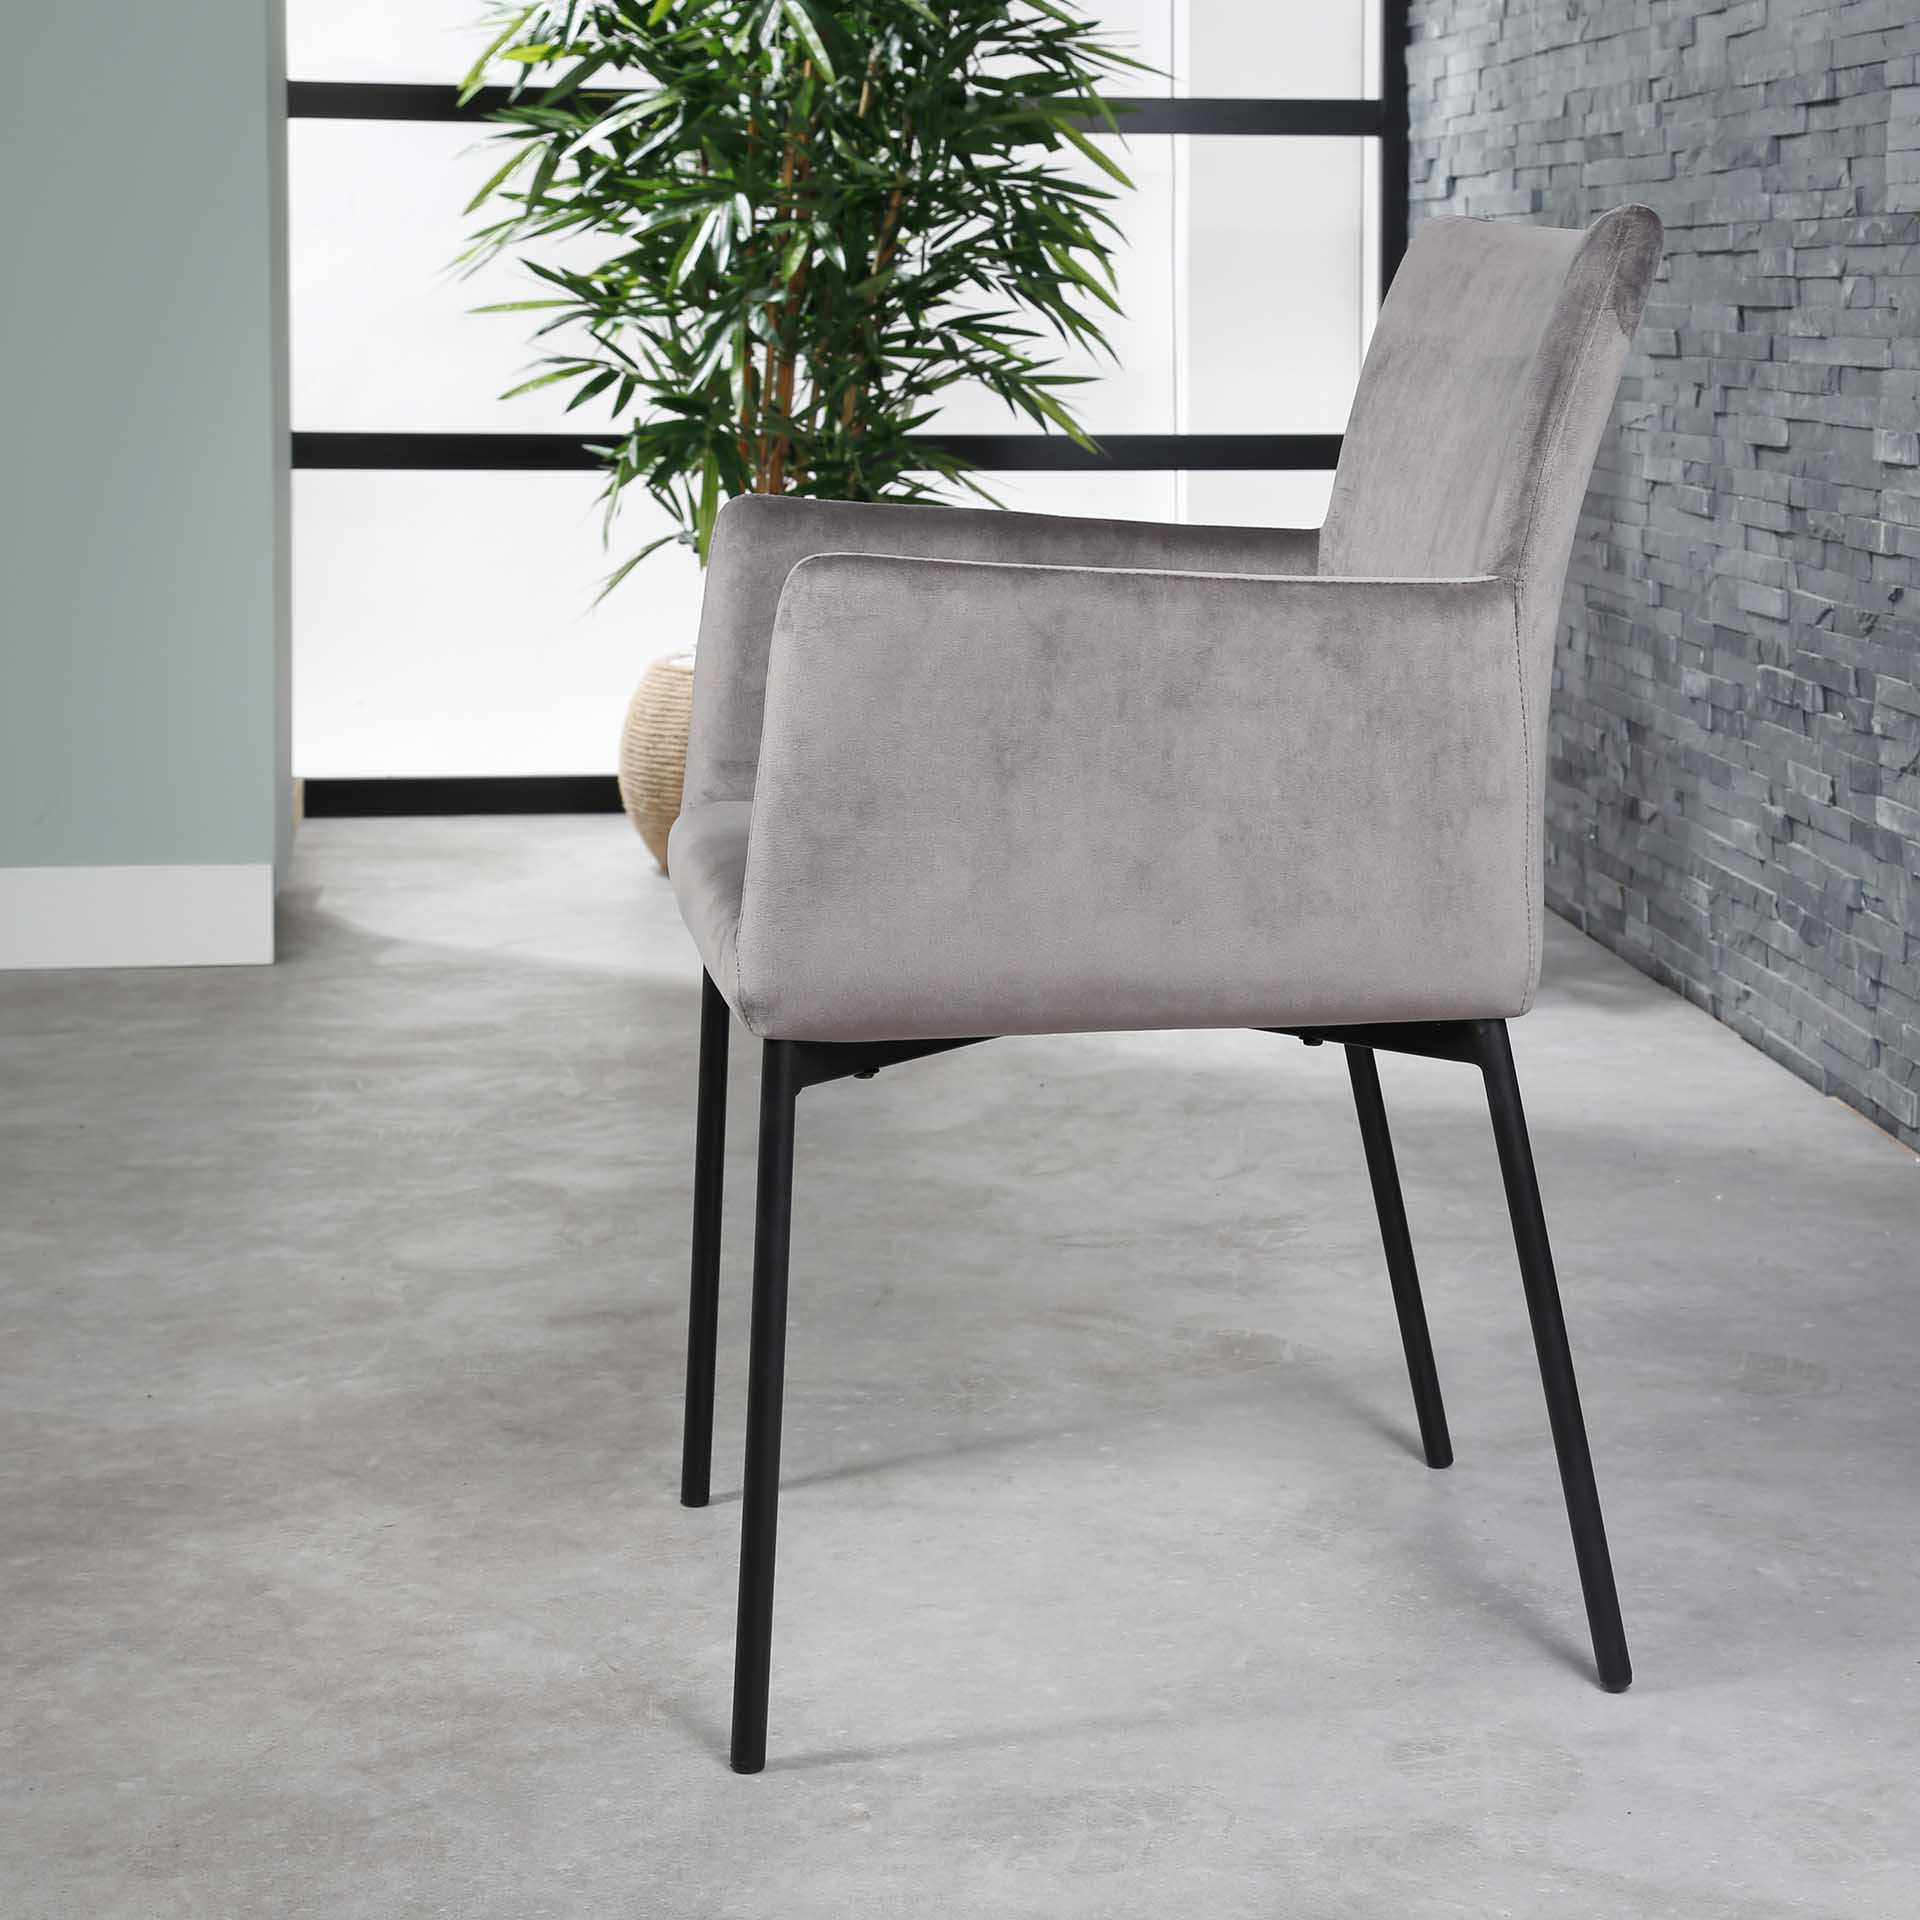 Fauteuil De Table En Velours Gris Java Chaises Pier Import